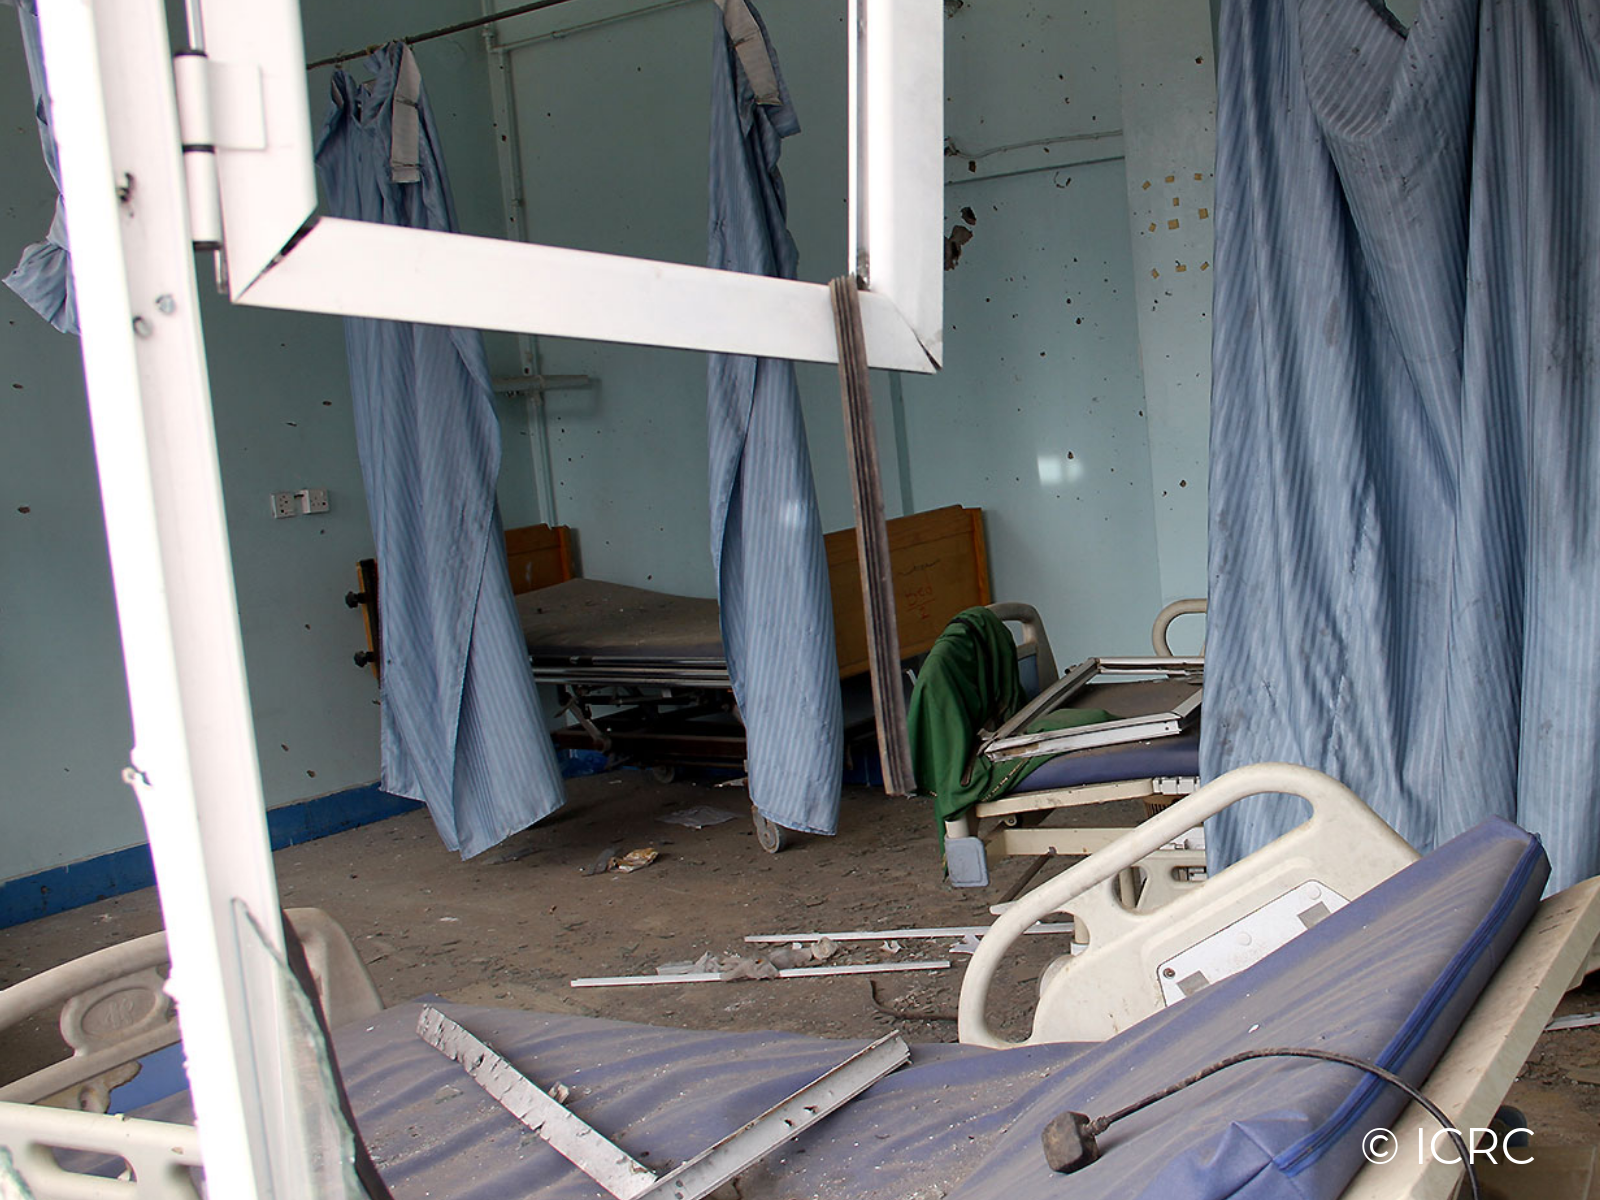 Protecting health care in armed conflict: action towards accountability